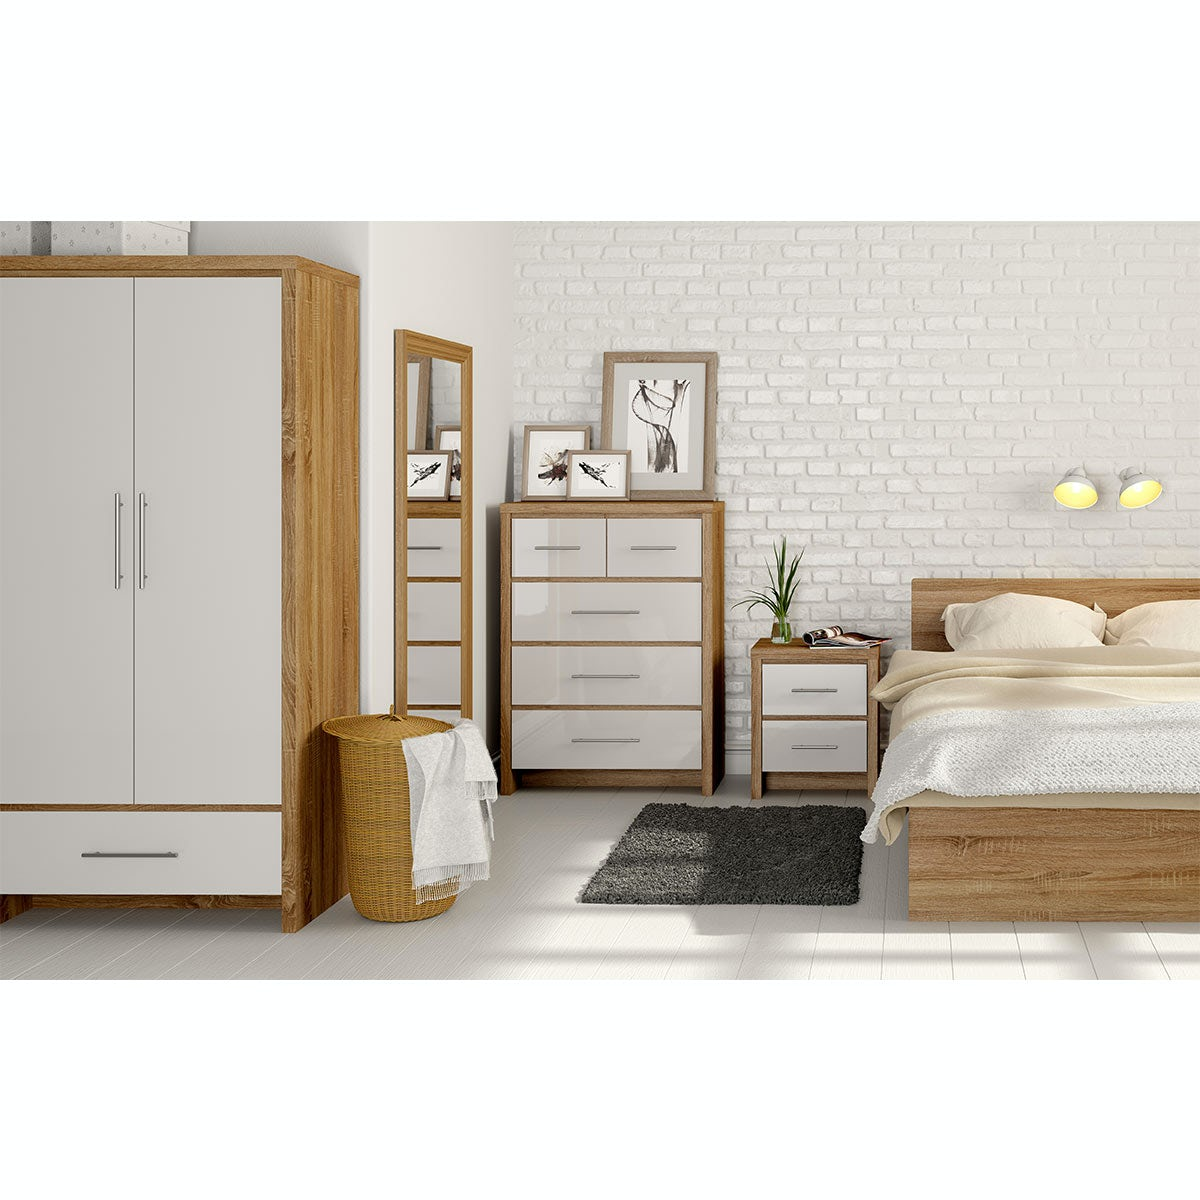 Tall Bedroom Chest Mfi London Oak And White Gloss 4 Drawer Tall Chest Victoriaplumcom